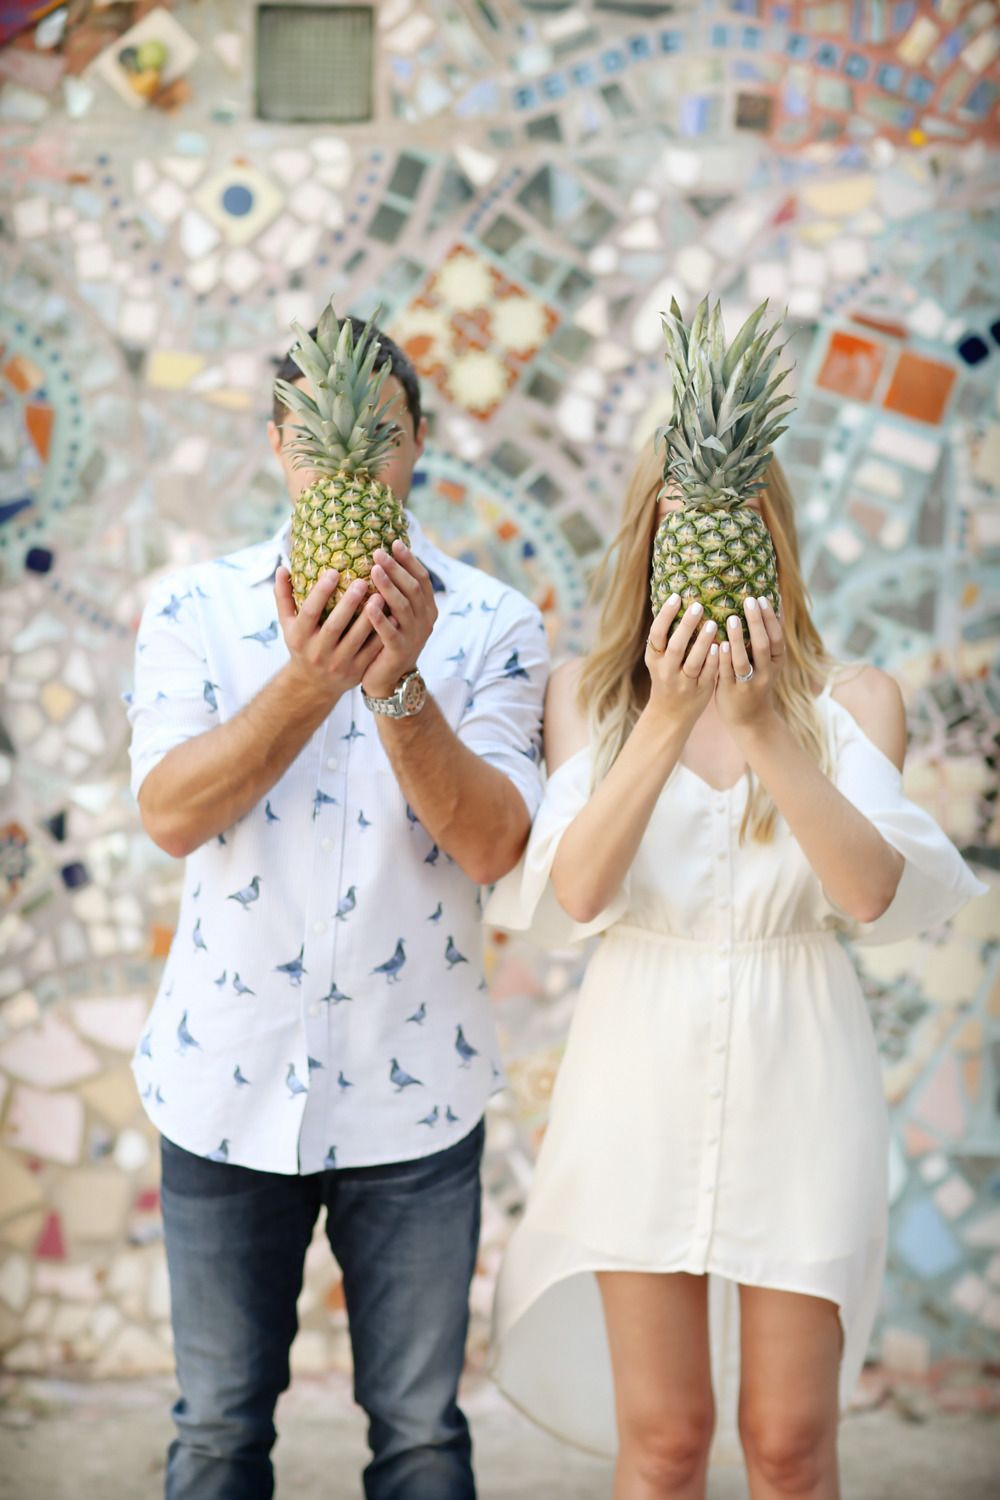 Adorable engagement photo idea for a tropical wedding. Photography: Alison Conklin Photography - alisonconklin.com Read More: http://www.stylemepretty.com/2014/08/26/eat-sleep-wears-philadelphia-engagement-session/